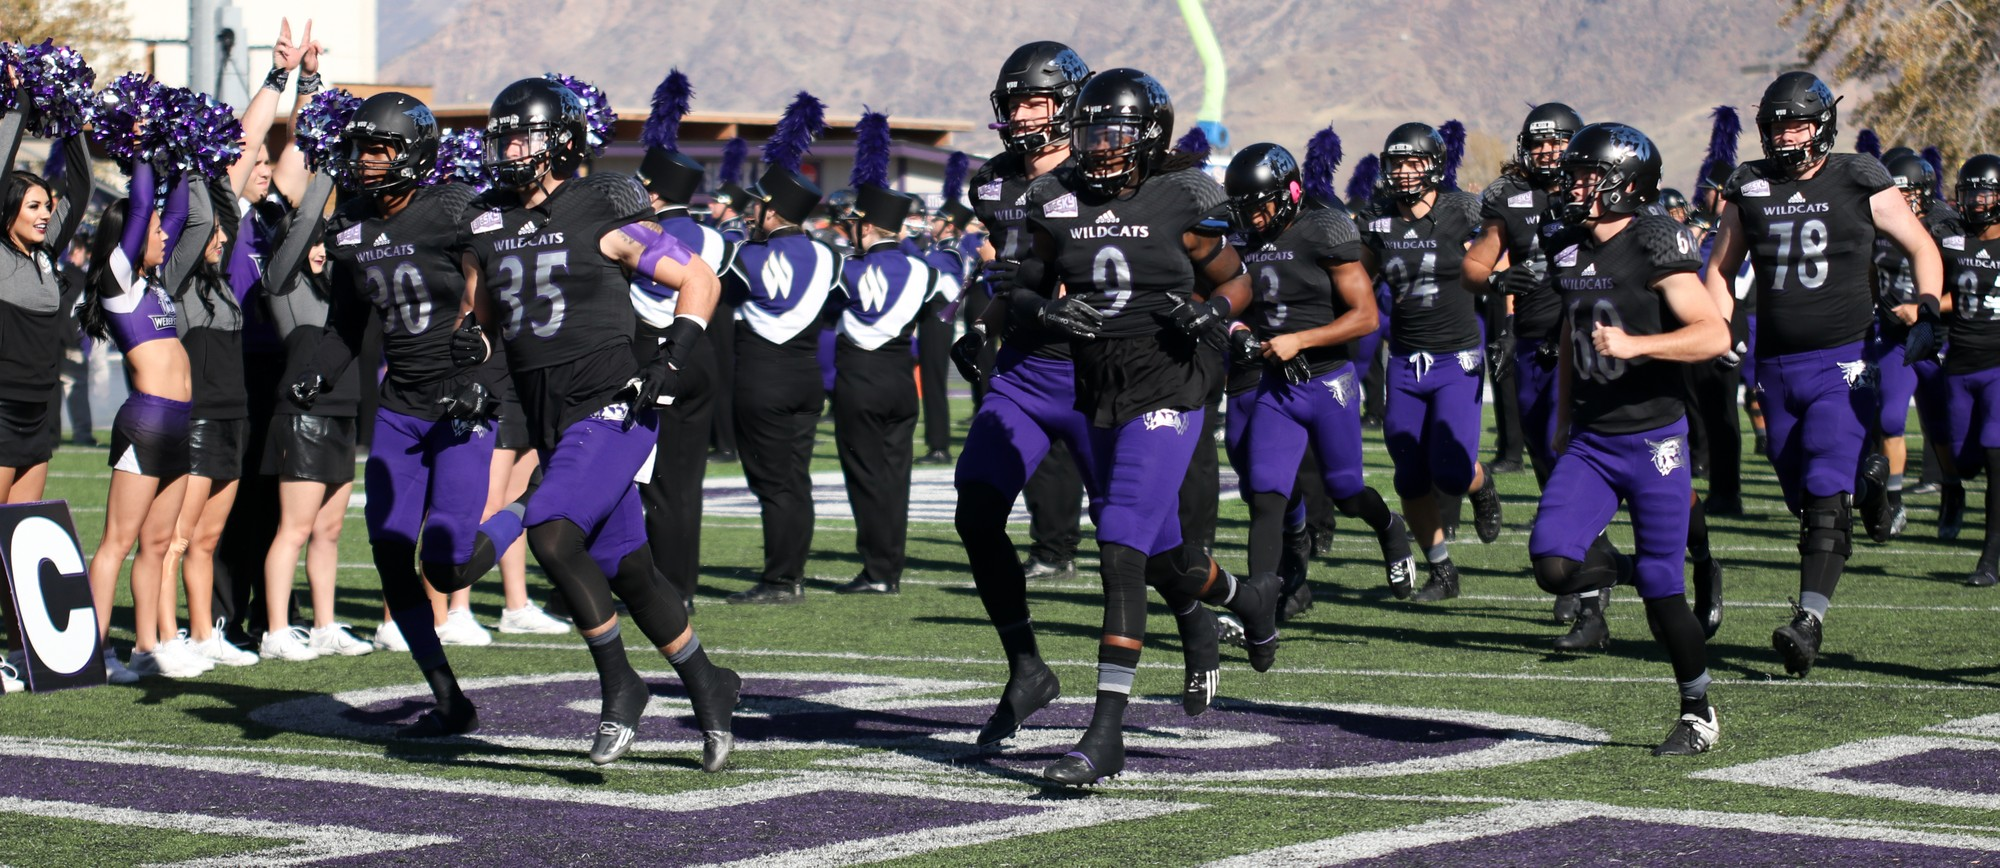 Cats Vs Dogs Weber State To Kick Off Football Season Signpost